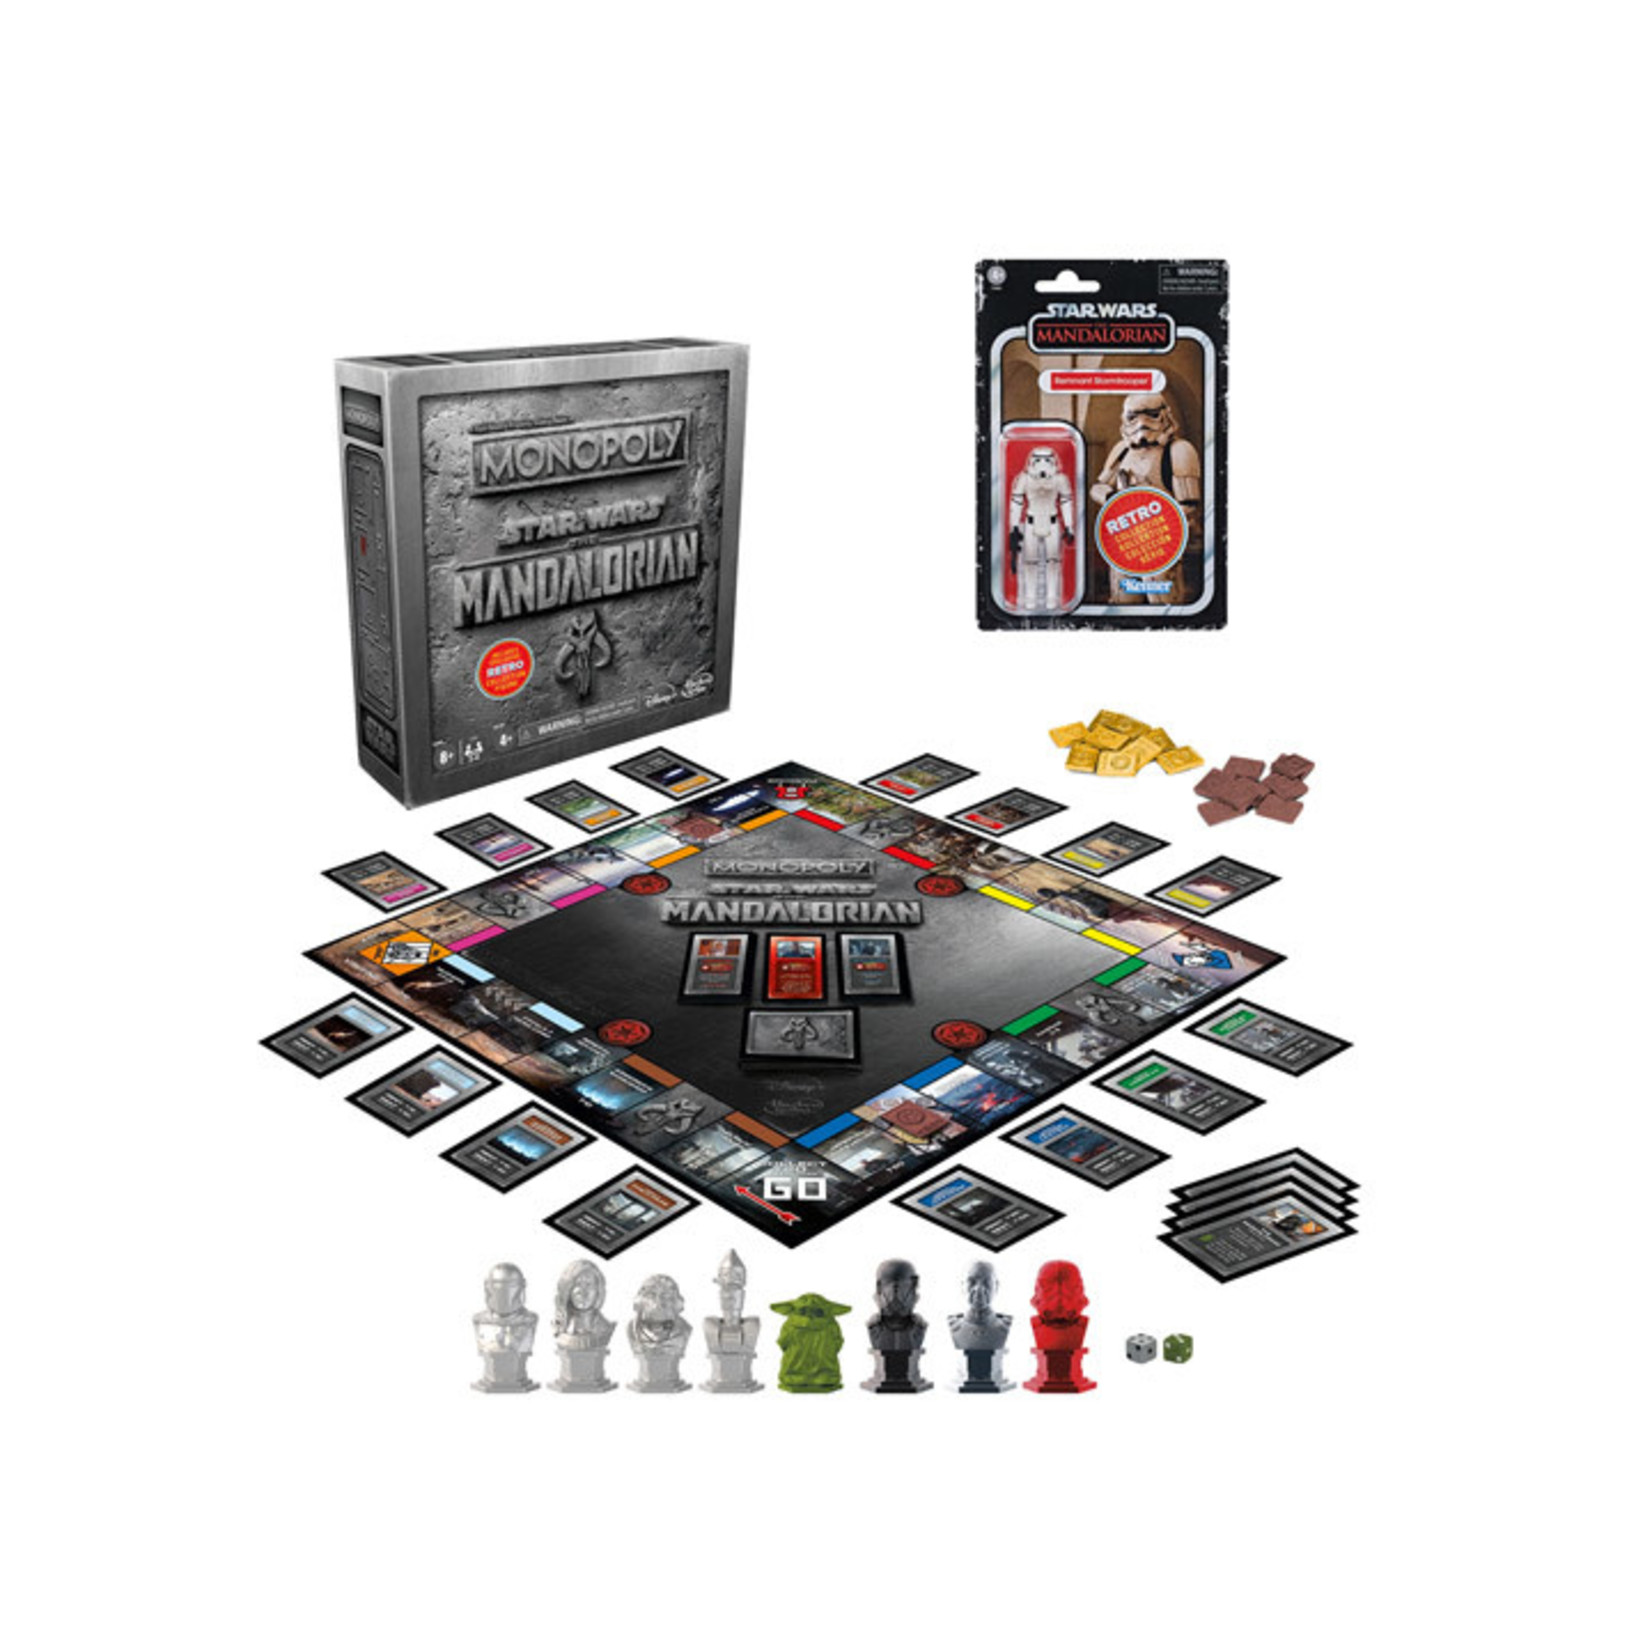 Hasbro Star Wars The Mandalorian Monopoly Collector's Edition with Retro Remnant Stormtrooper Action Figure